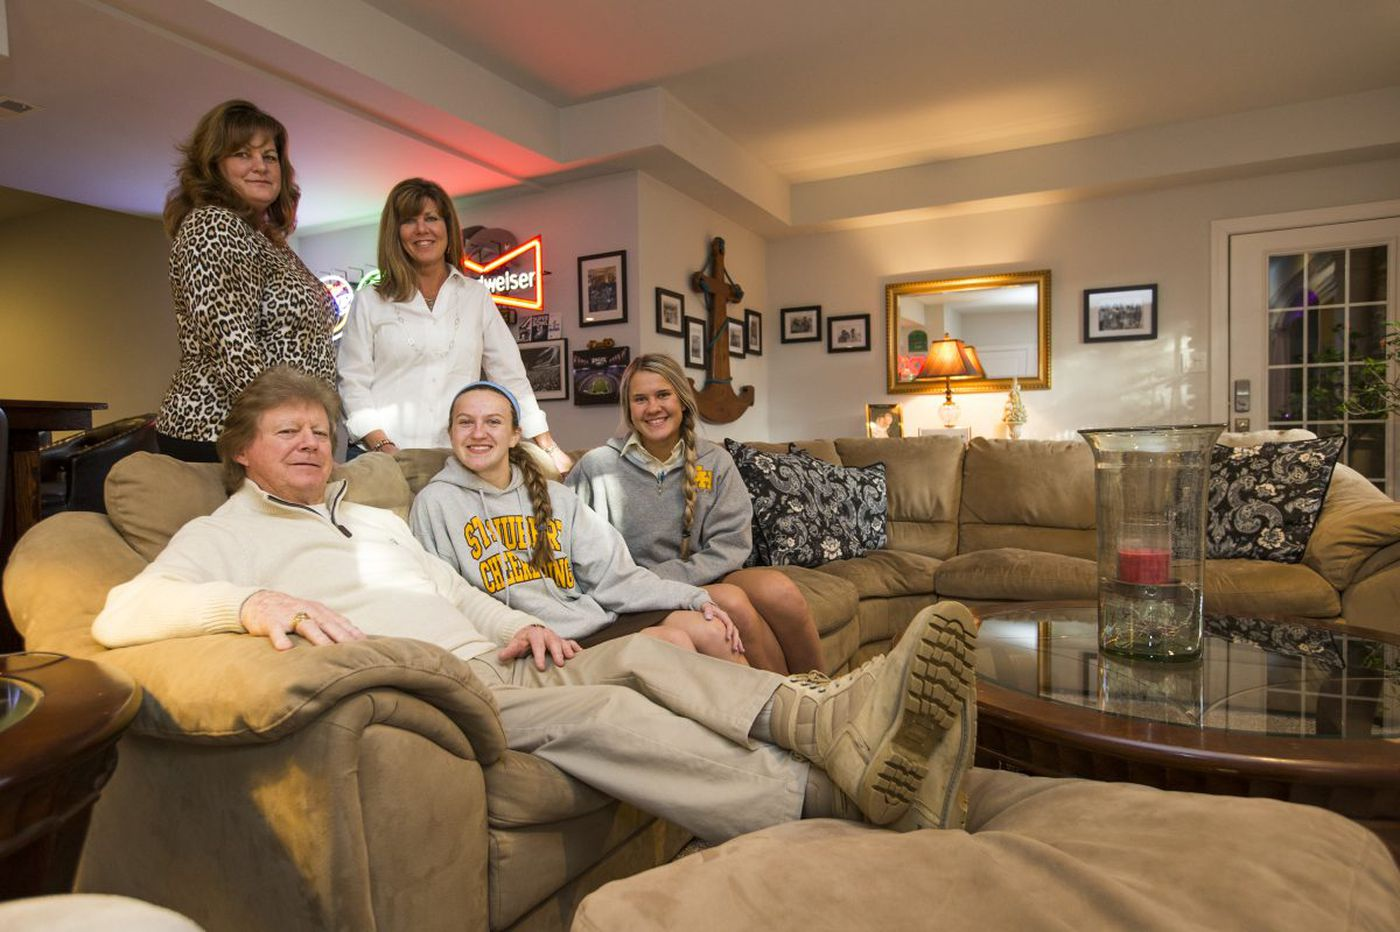 Philadelphia area embraces in-law suites for inter-generational living